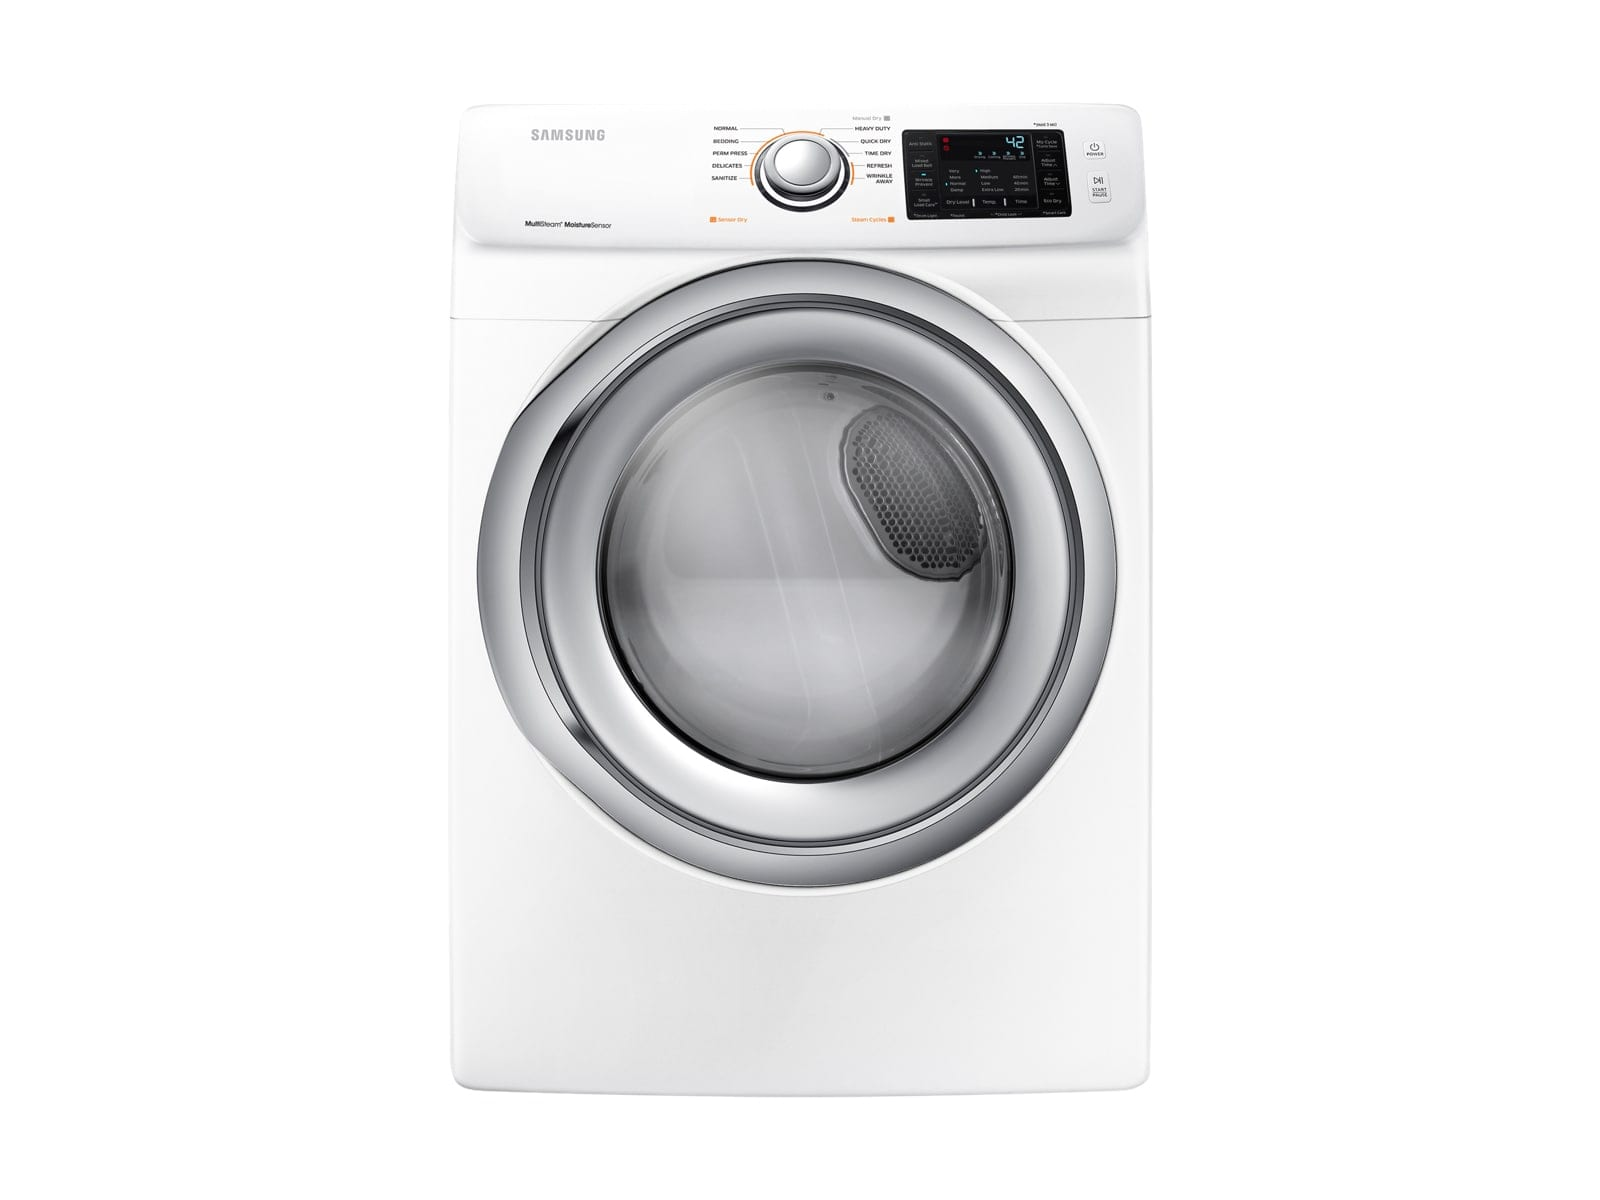 Samsung DV5300 Electric Dryer with Steam (2018) for $299 with Save@Work - BACK AGAIN